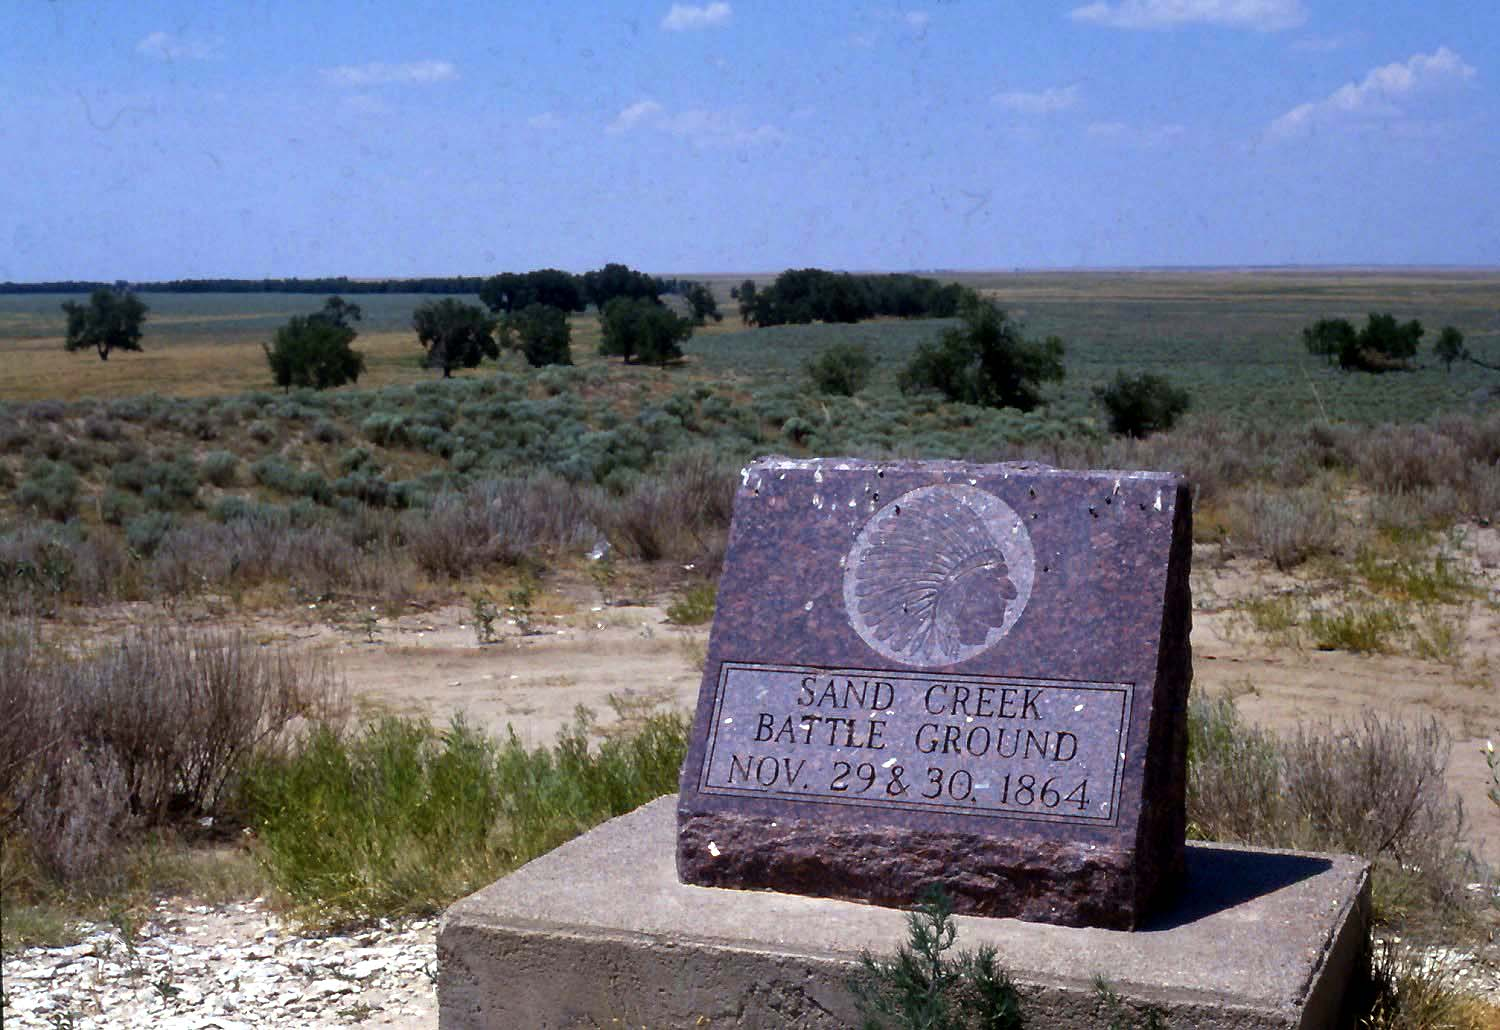 Carla Fredericks: Racial slur tied to Sand Creek Massacre